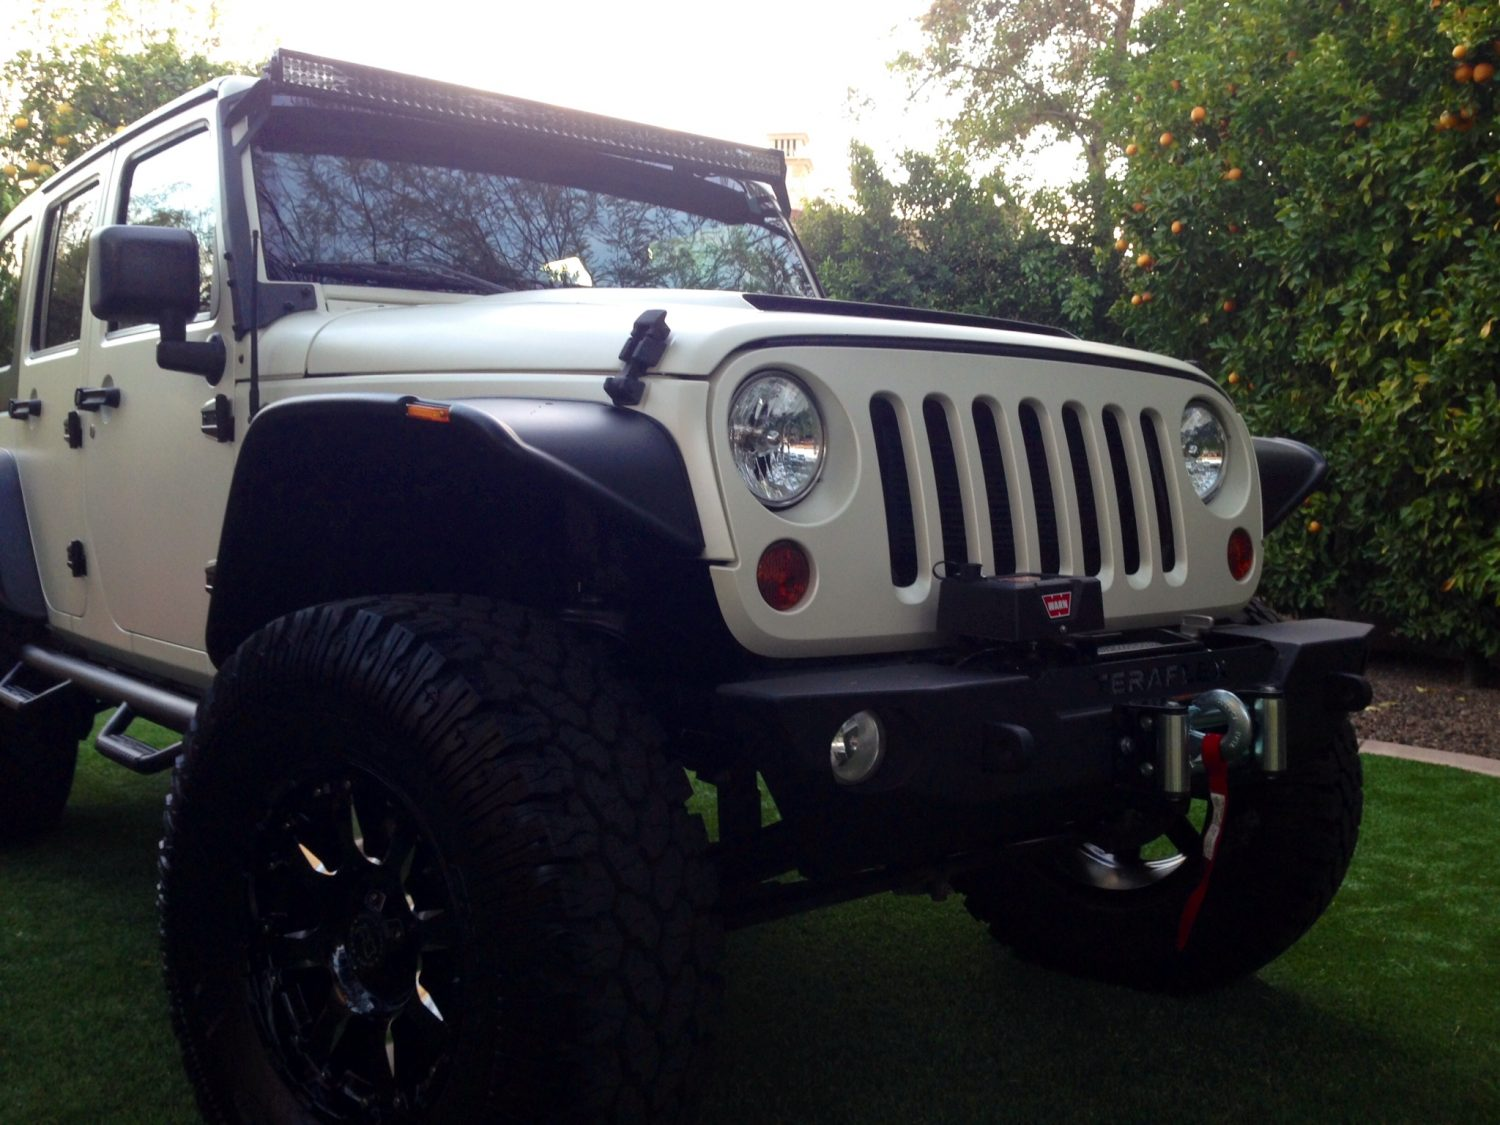 Local Screenwriter And Car Enthusiast Tricks Out Jeep For